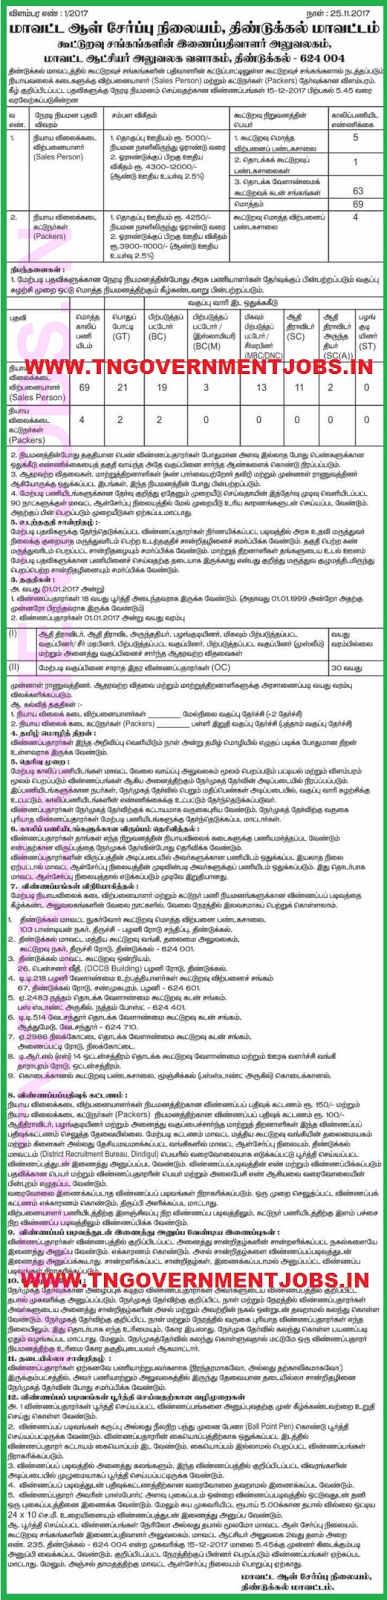 dindigul-cooperative-society-ration-shop-sales-man-packers-post-recruitment-notification-2017-www-tngovernmentjobs-in